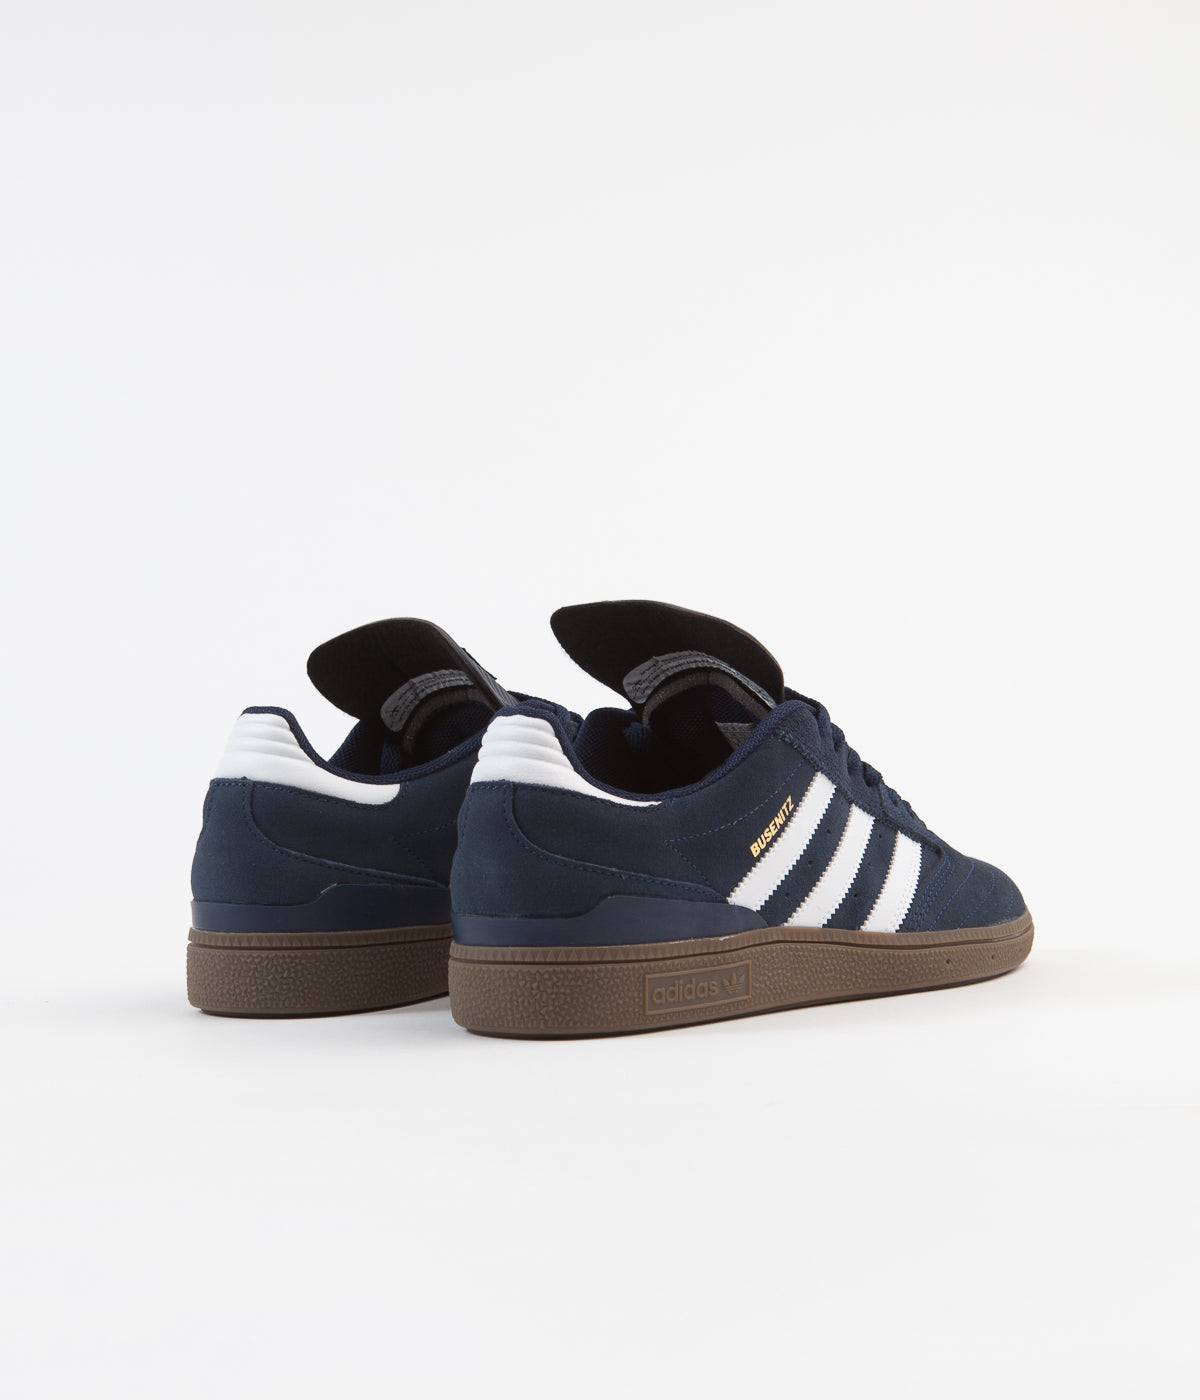 Adidas Busenitz Shoes - Collegiate Navy / White / Gum5